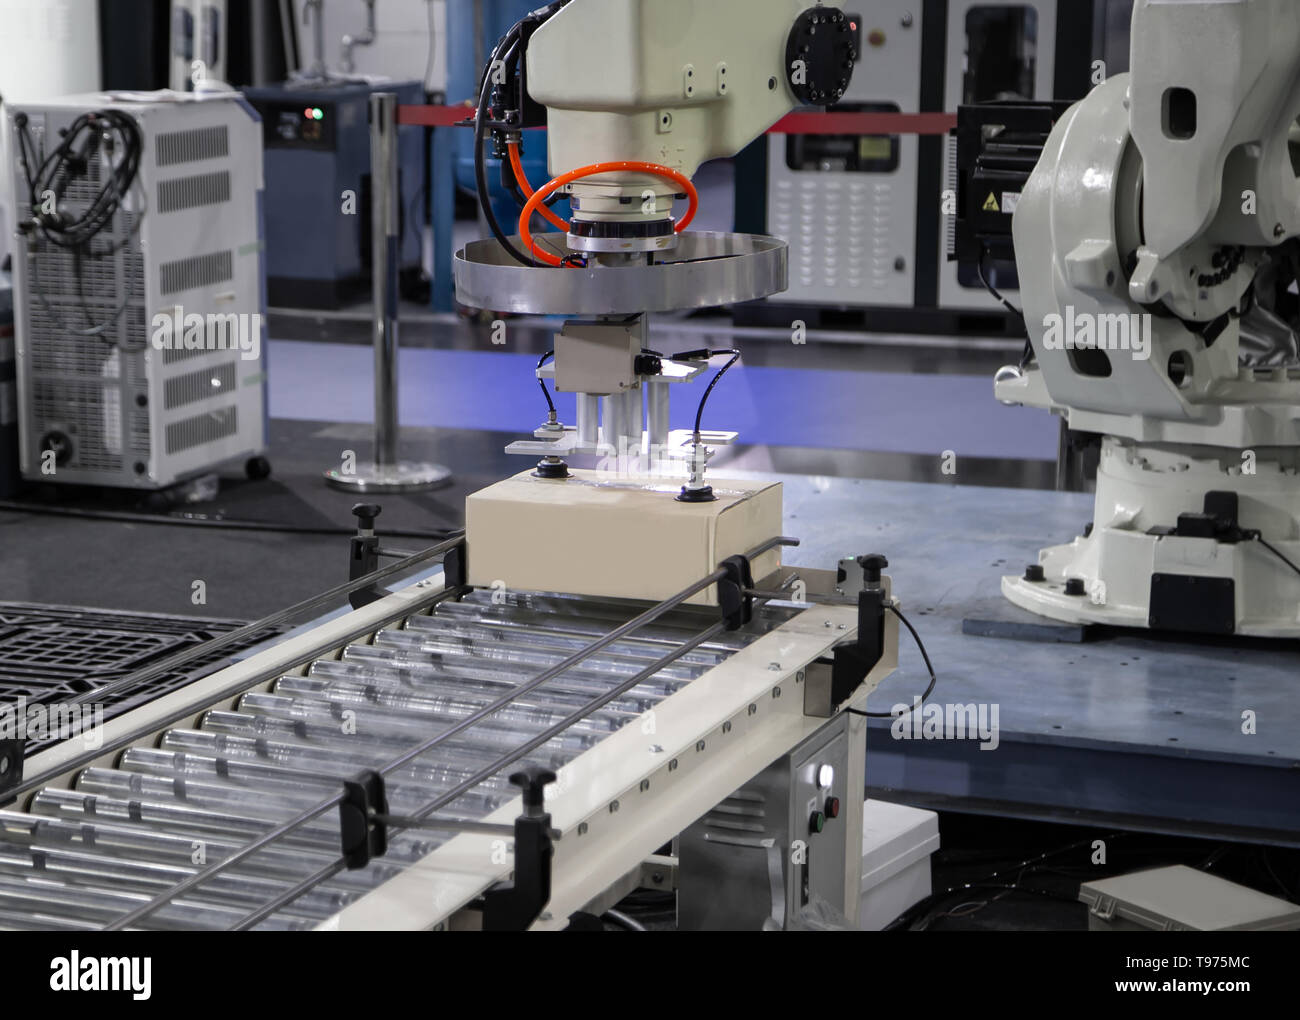 Robot arm loading carton on conveyor in manufacturing production line - Stock Image